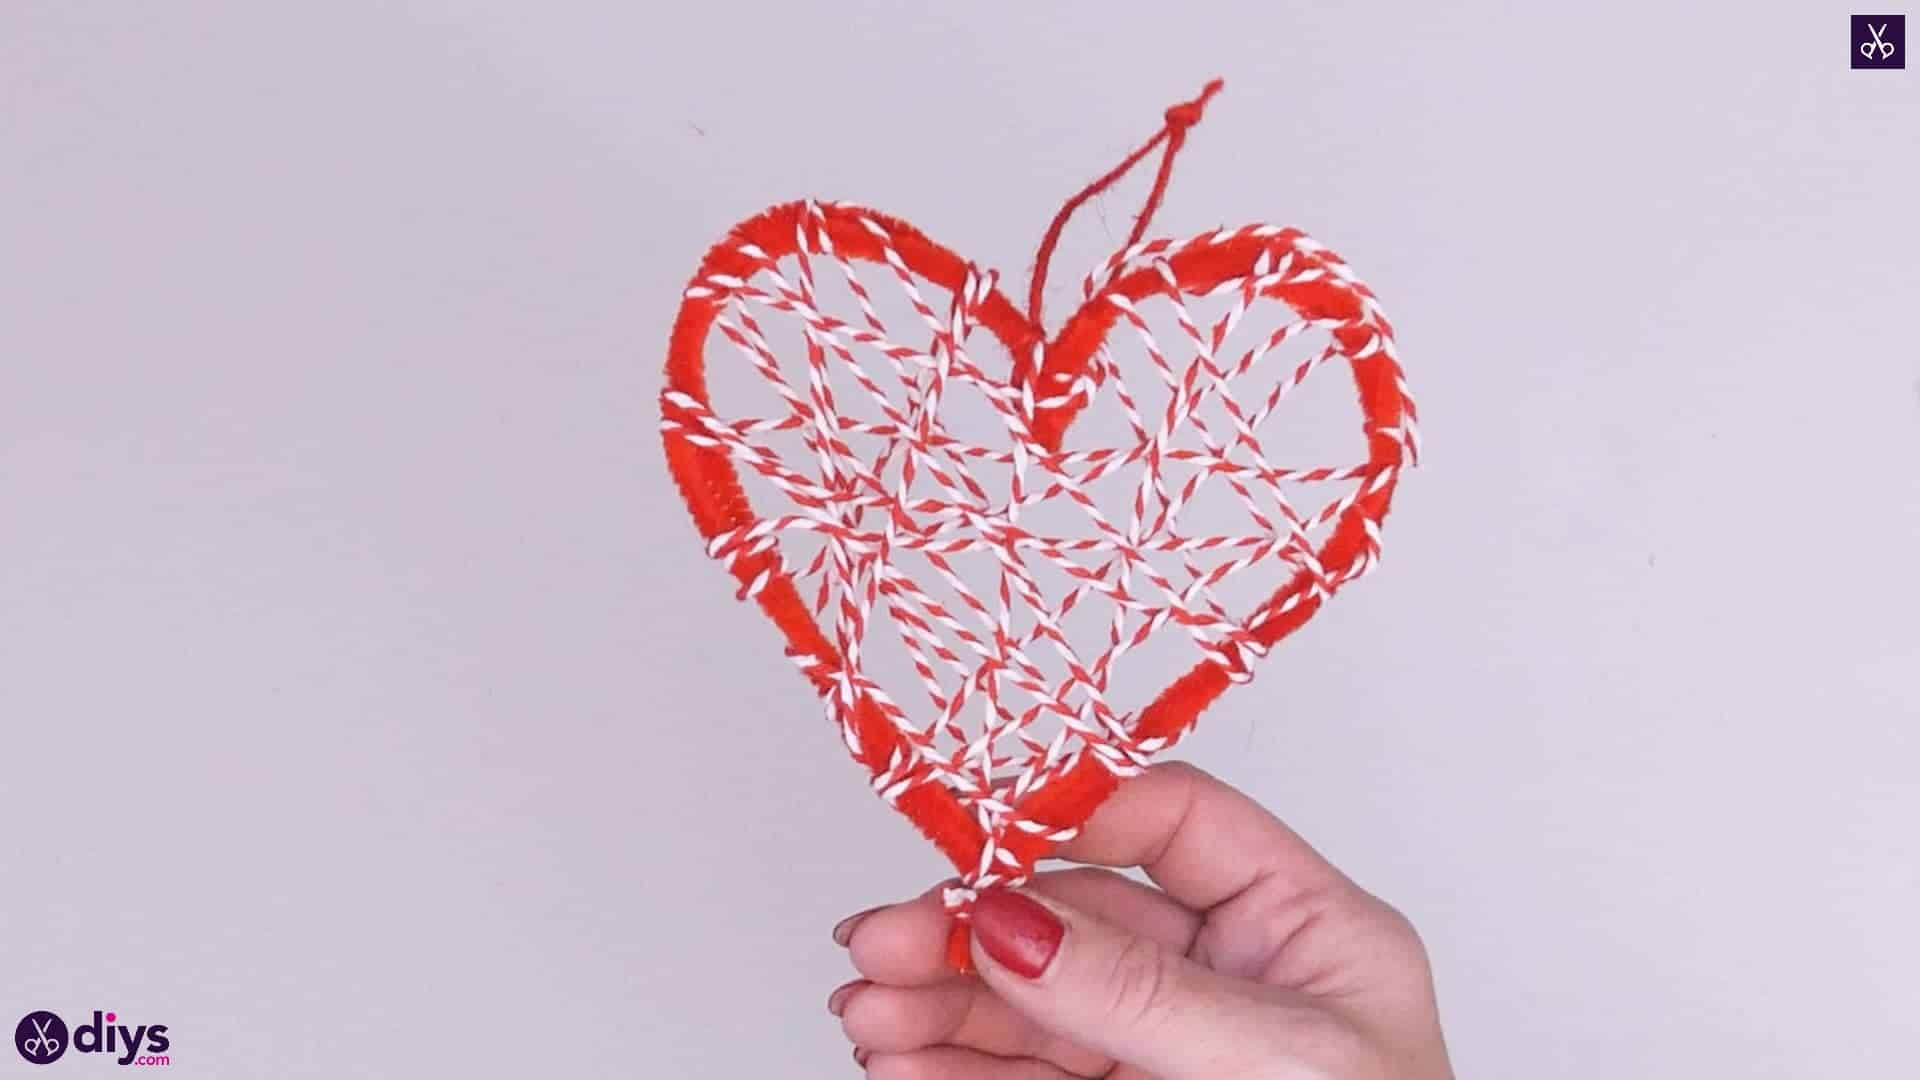 Diy hanging heart wall decor step 1